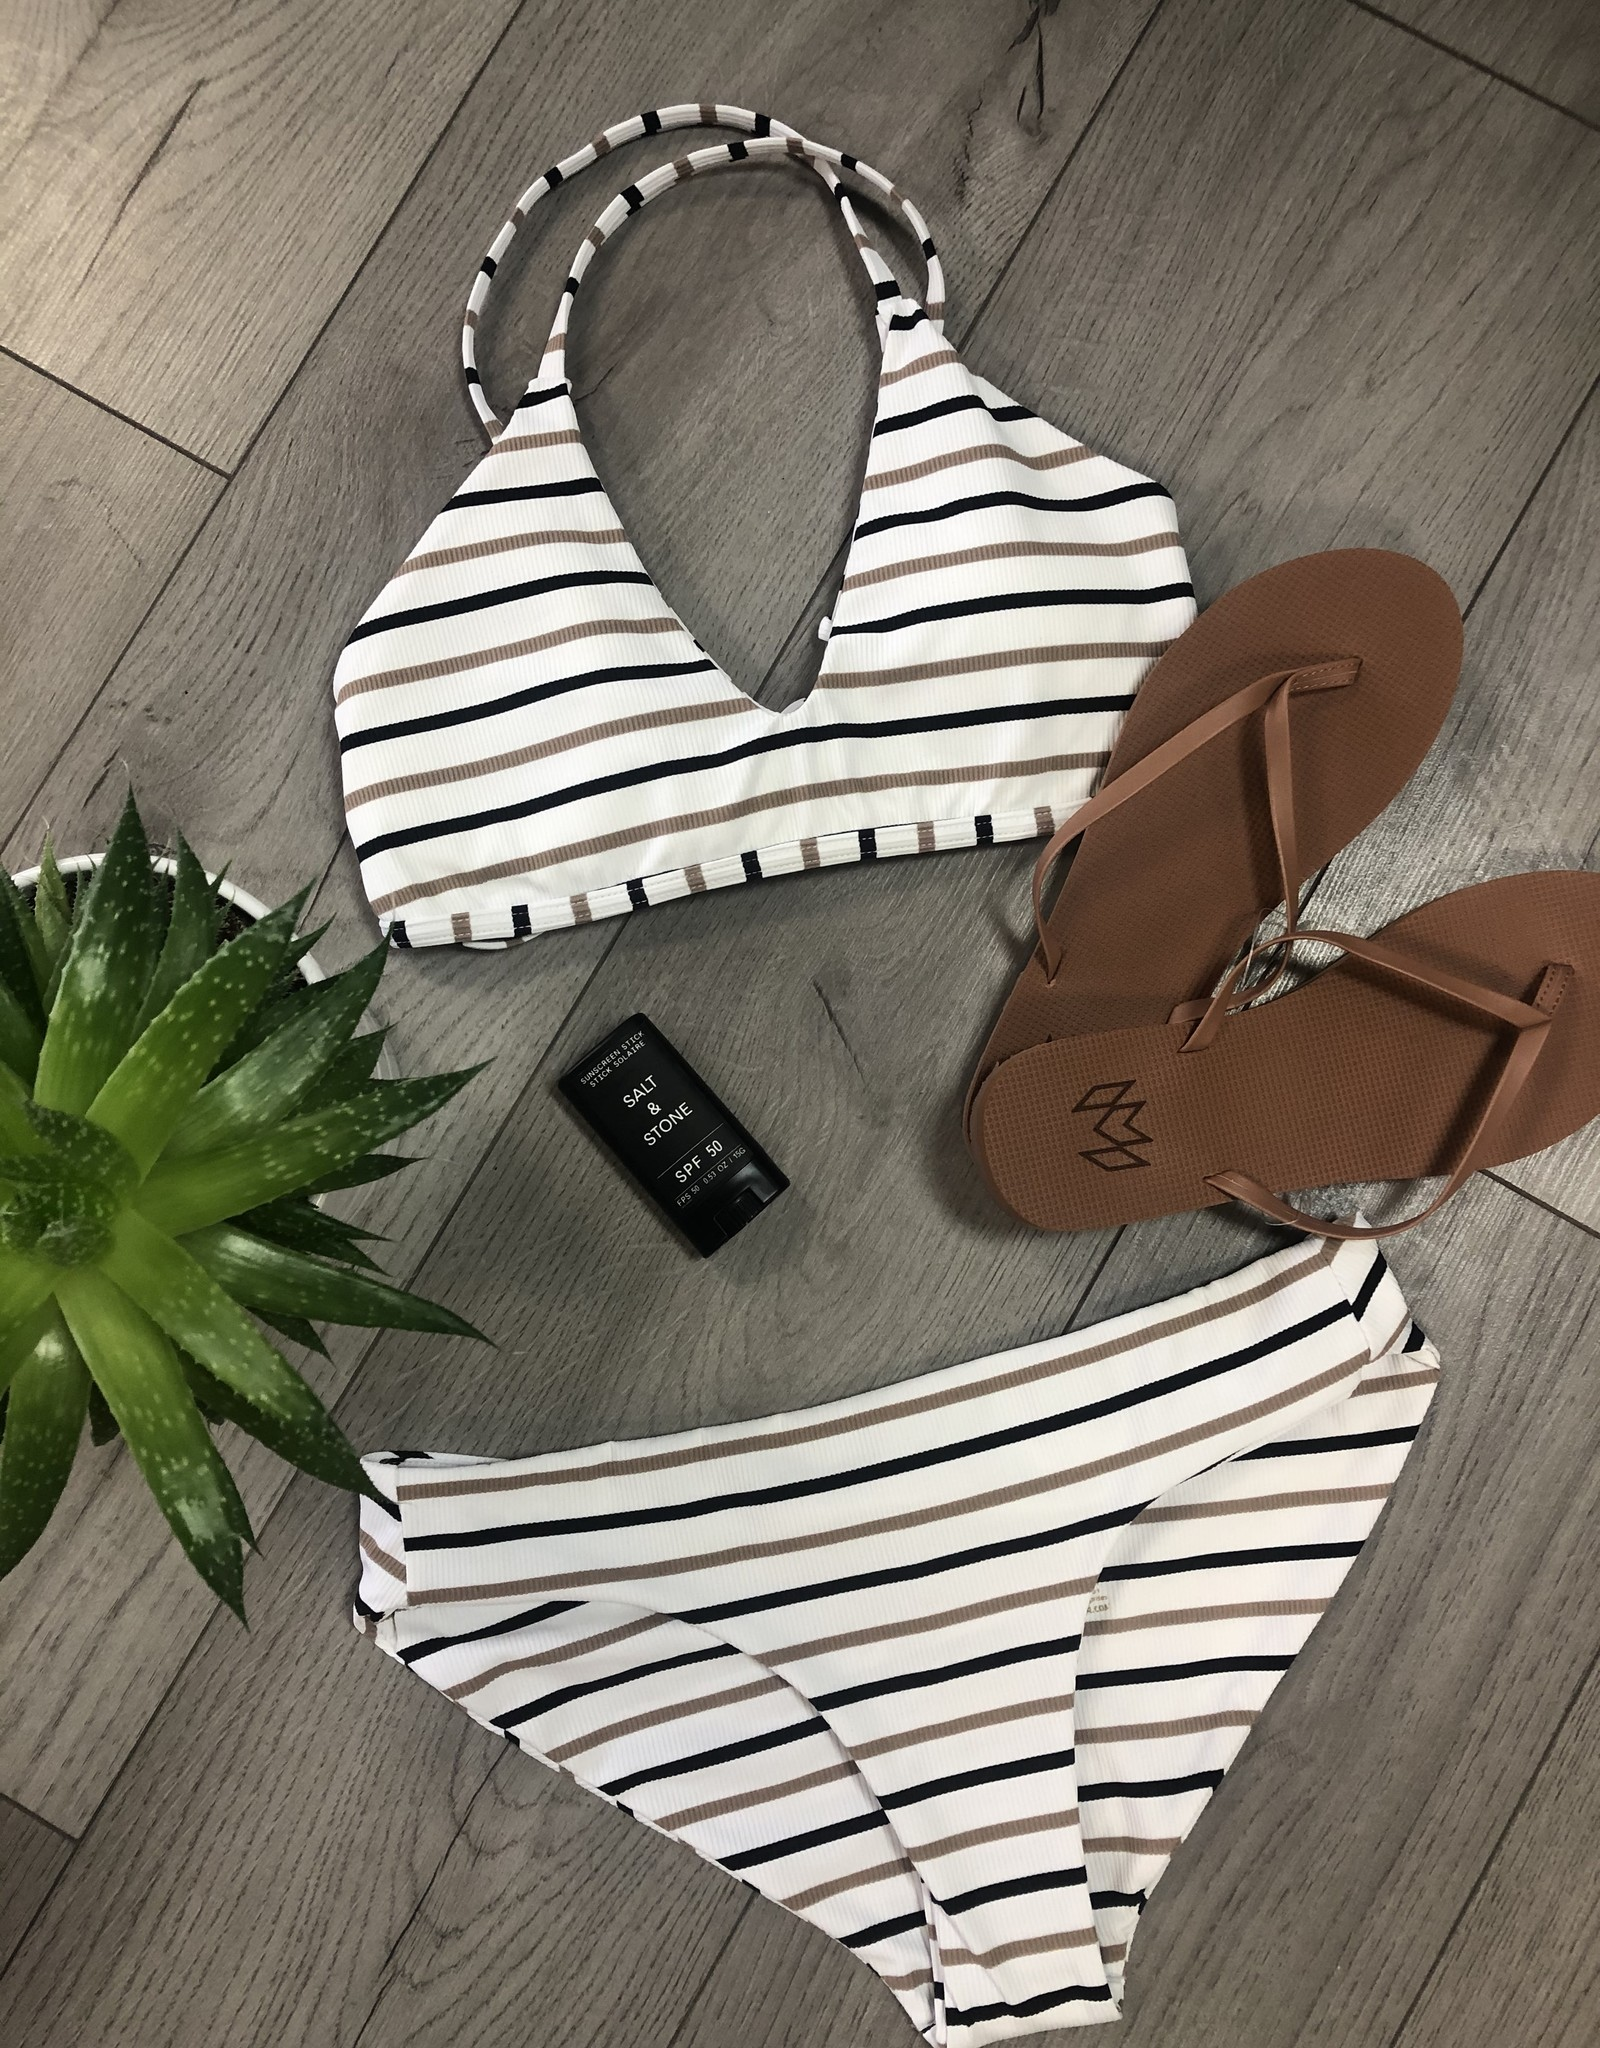 JUNE Swimwear Charlotte Bikini Top